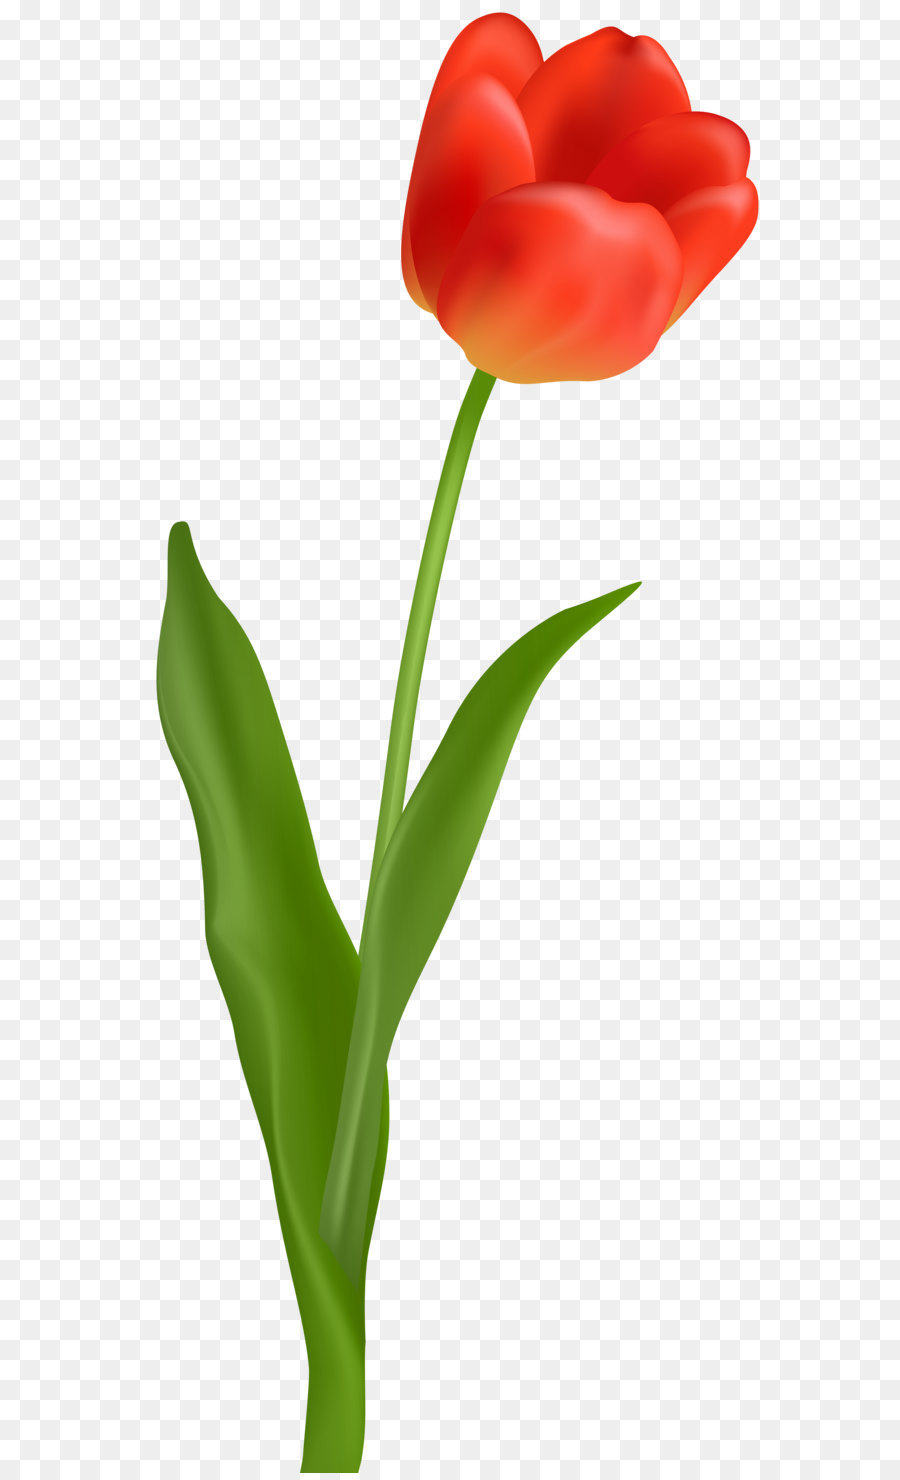 Red tulip clipart png black and white stock Flowers Clipart Background png download - 3531*8000 - Free ... png black and white stock